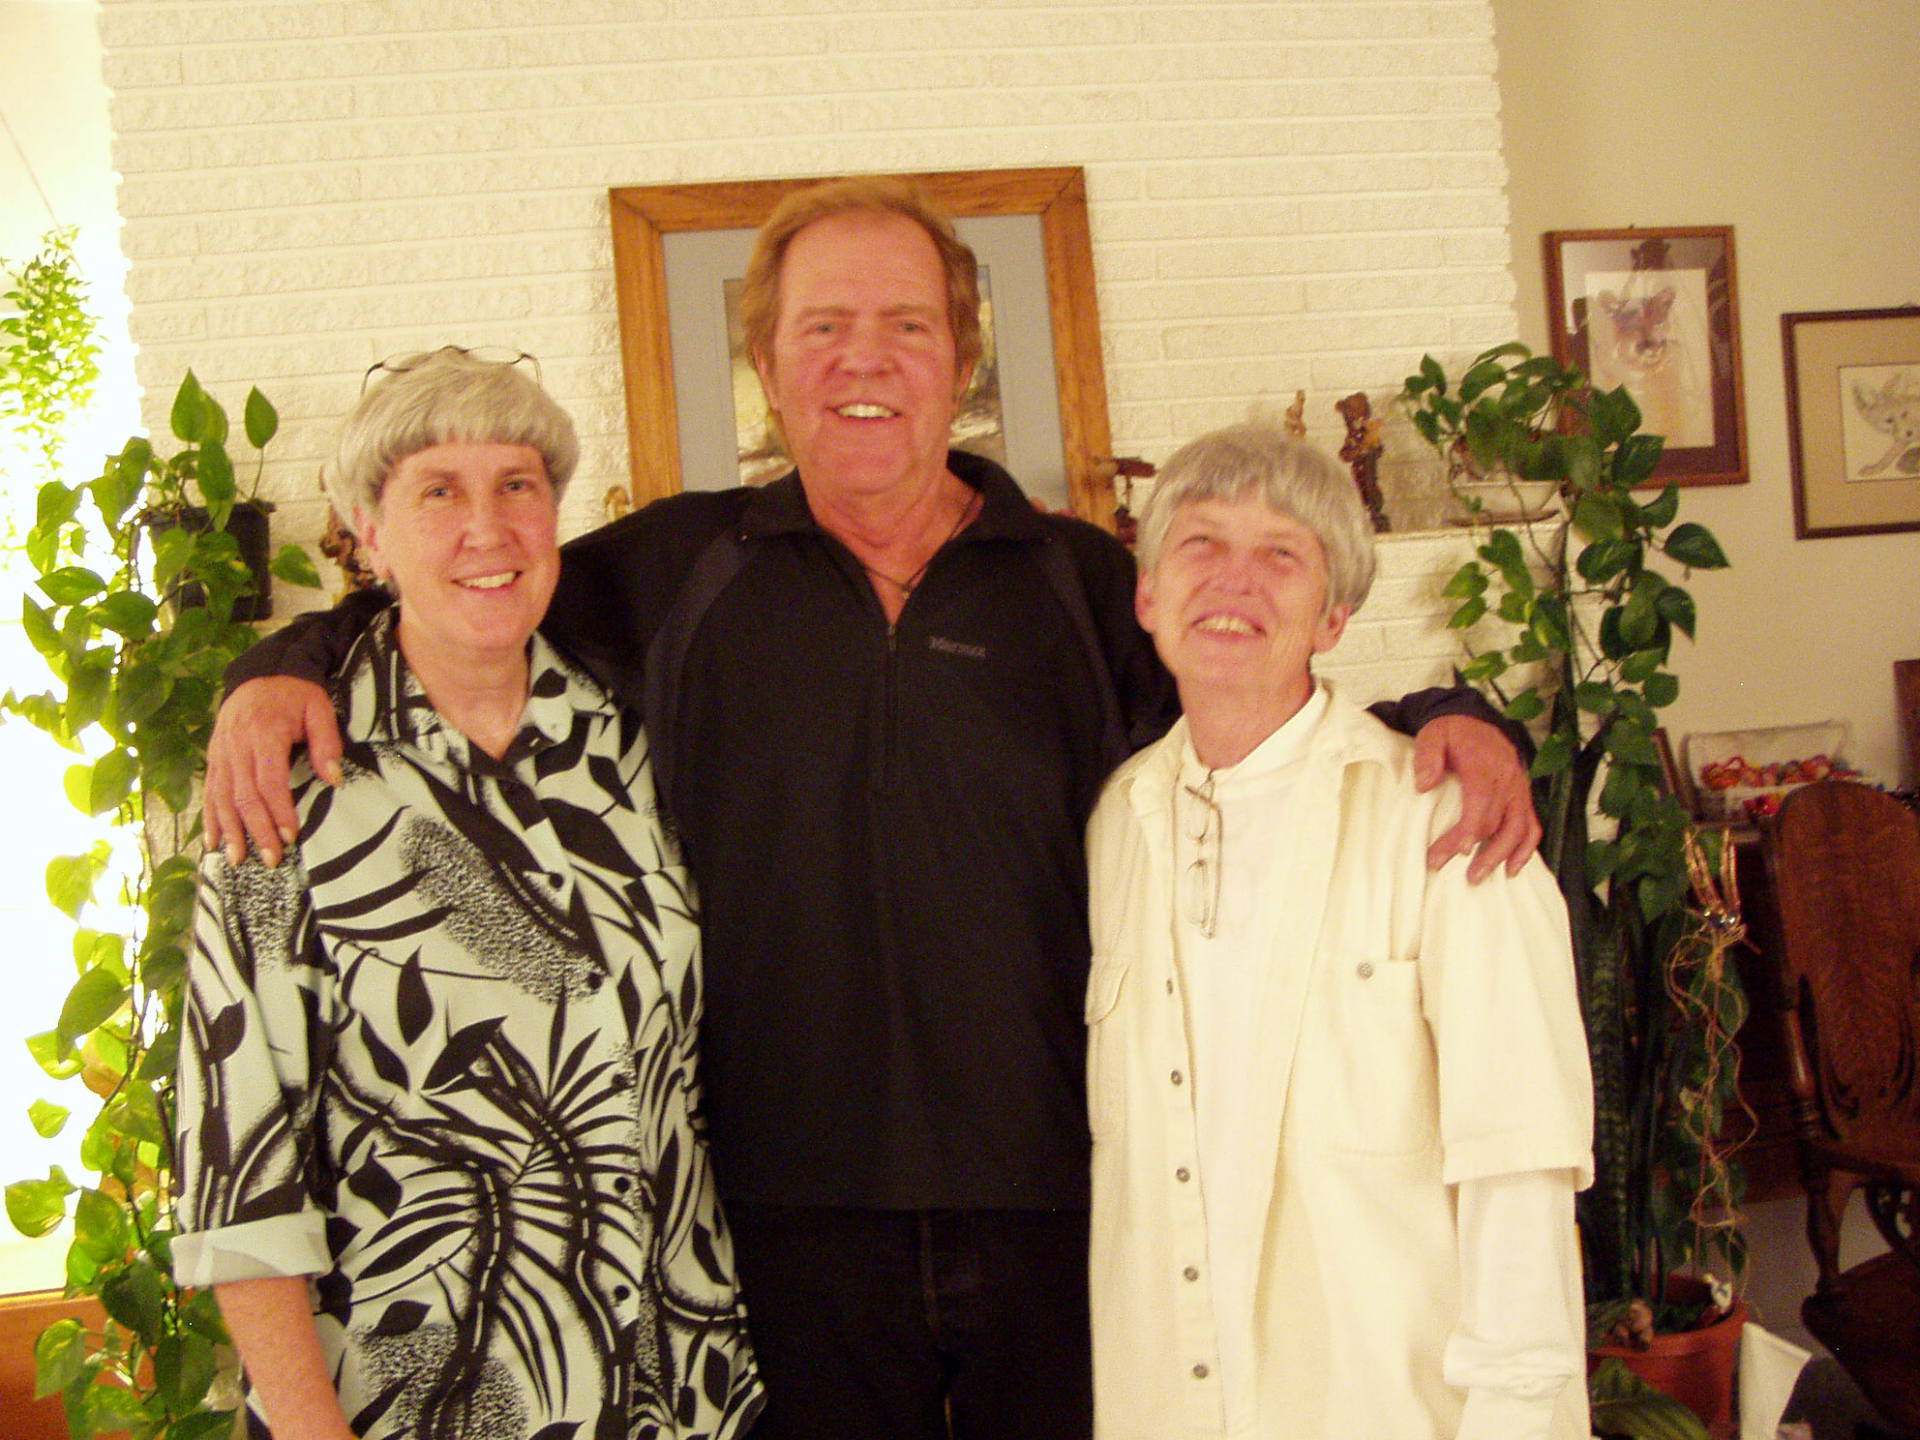 Corlie, Michael and Gayle after the concert